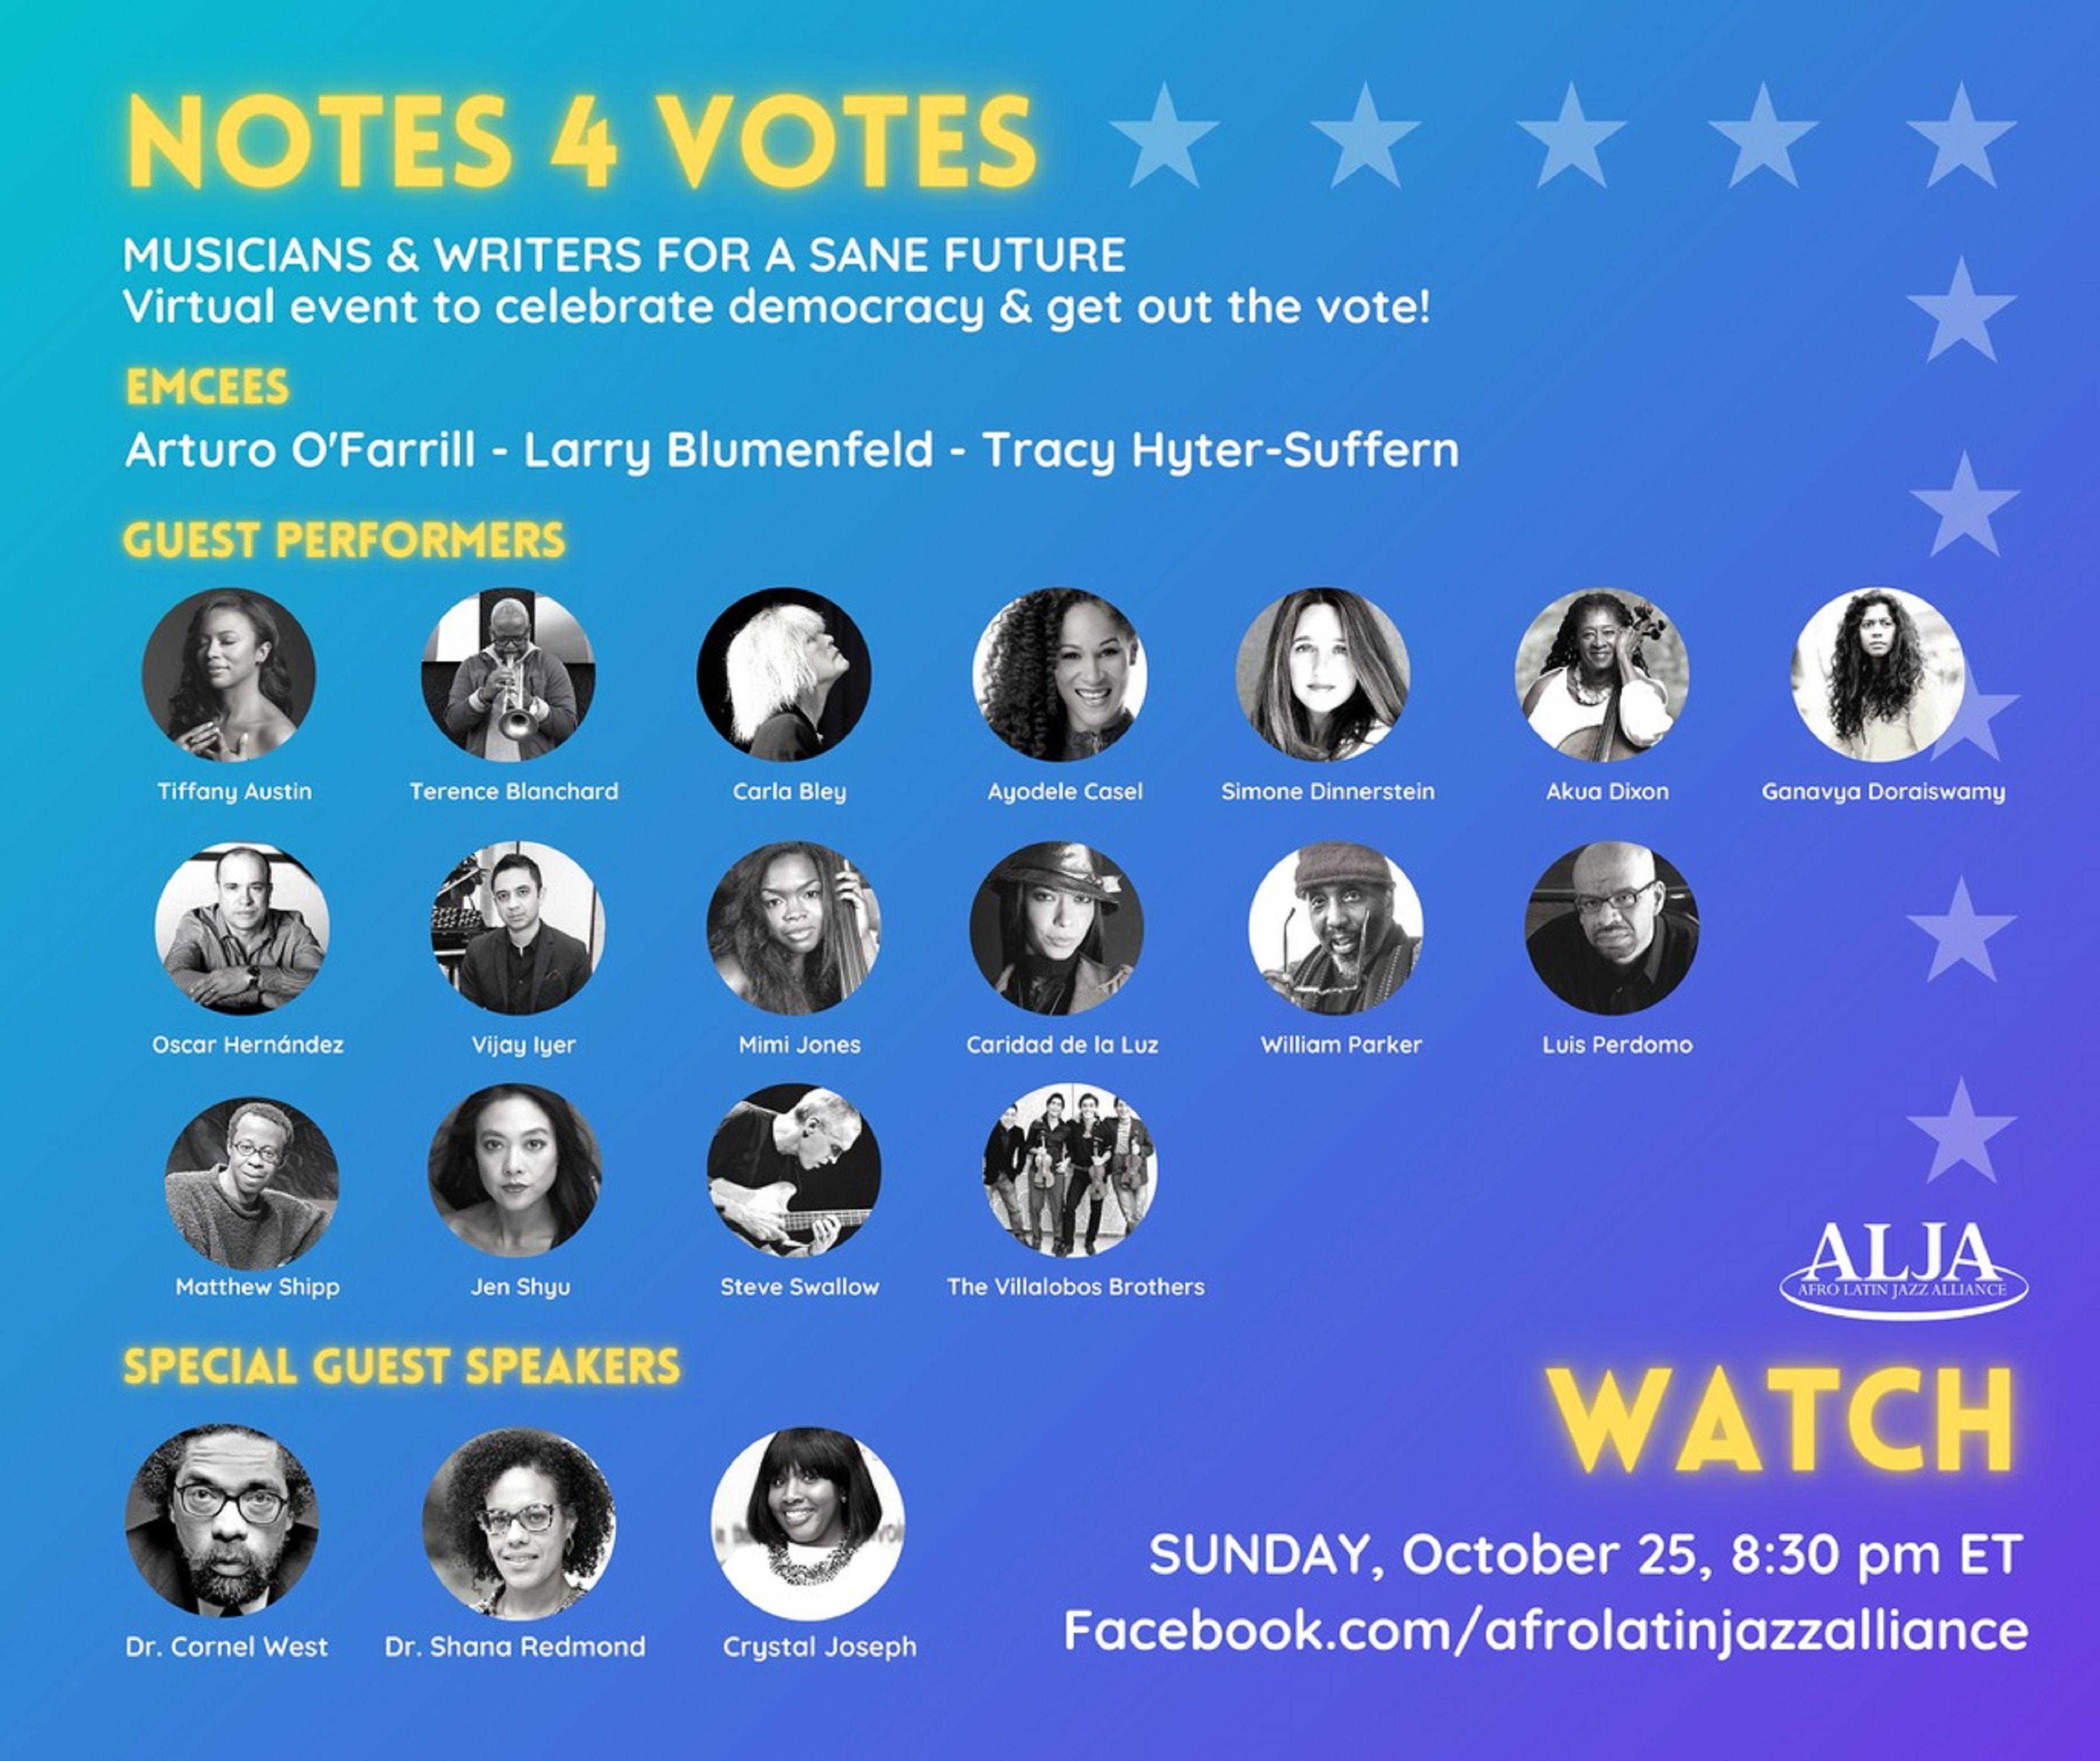 """NOTES 4 VOTES"" Featuring Terence Blanchard, Vijay Iyer, Carla Bley, Dr. Cornel West, Arturo O'Farrill, and Many Others"